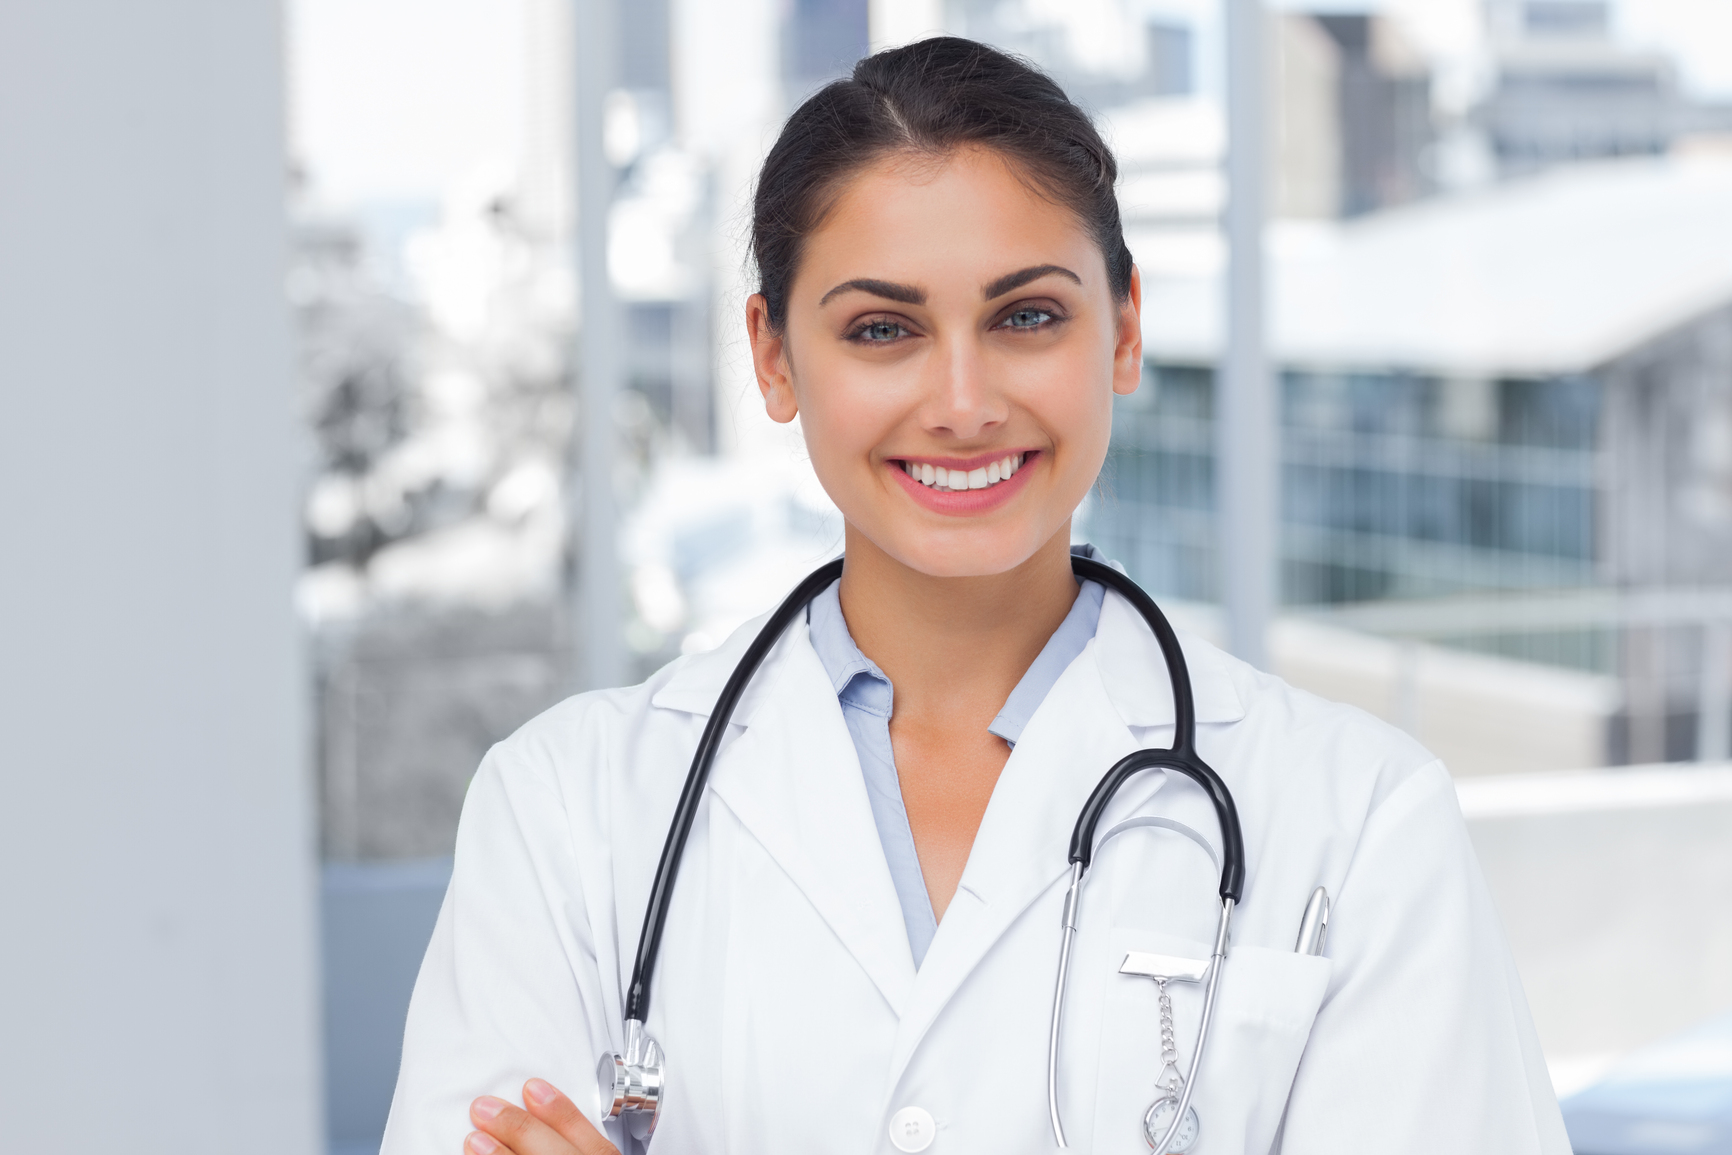 20s, Young Adult, Woman, Female, Caucasian, Indoors, Looking At Camera, Doctor, Practitioner, Profession, Professional, Specialist, Lab Coat, Stethoscope, Confident, Happy, Smile, Smiling, Standing, Clinic, Healthcare, Hospital, Medical, Staff, Attractive, Pretty, Brunette, Portrait